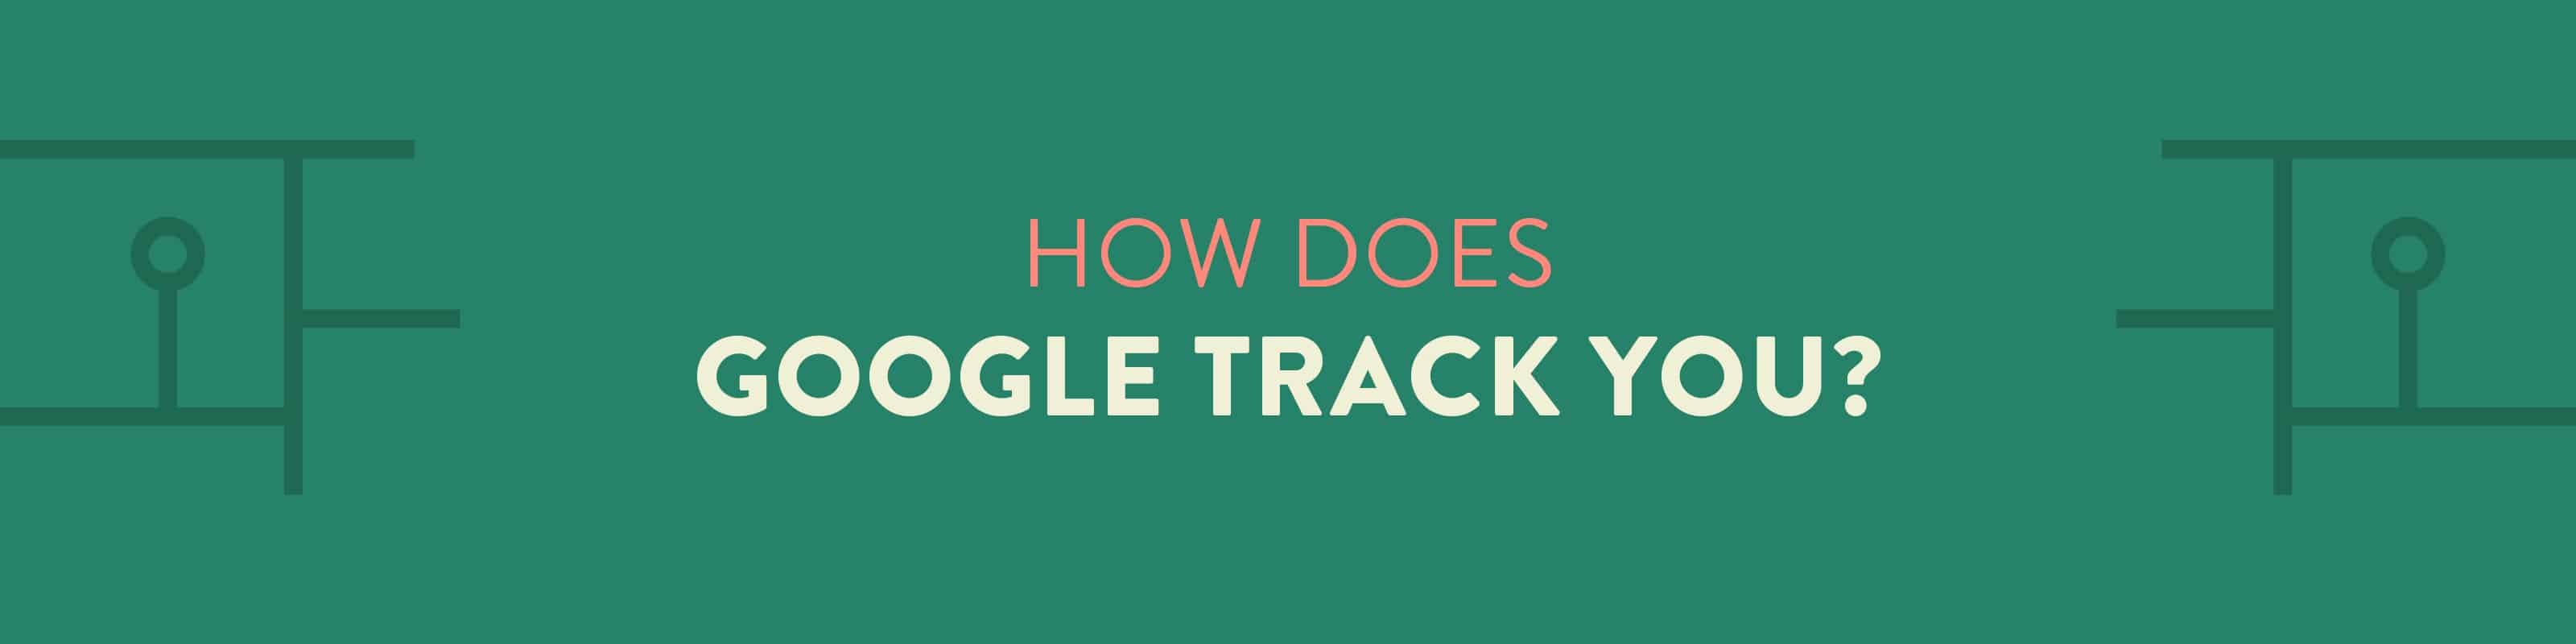 How does Google track you?